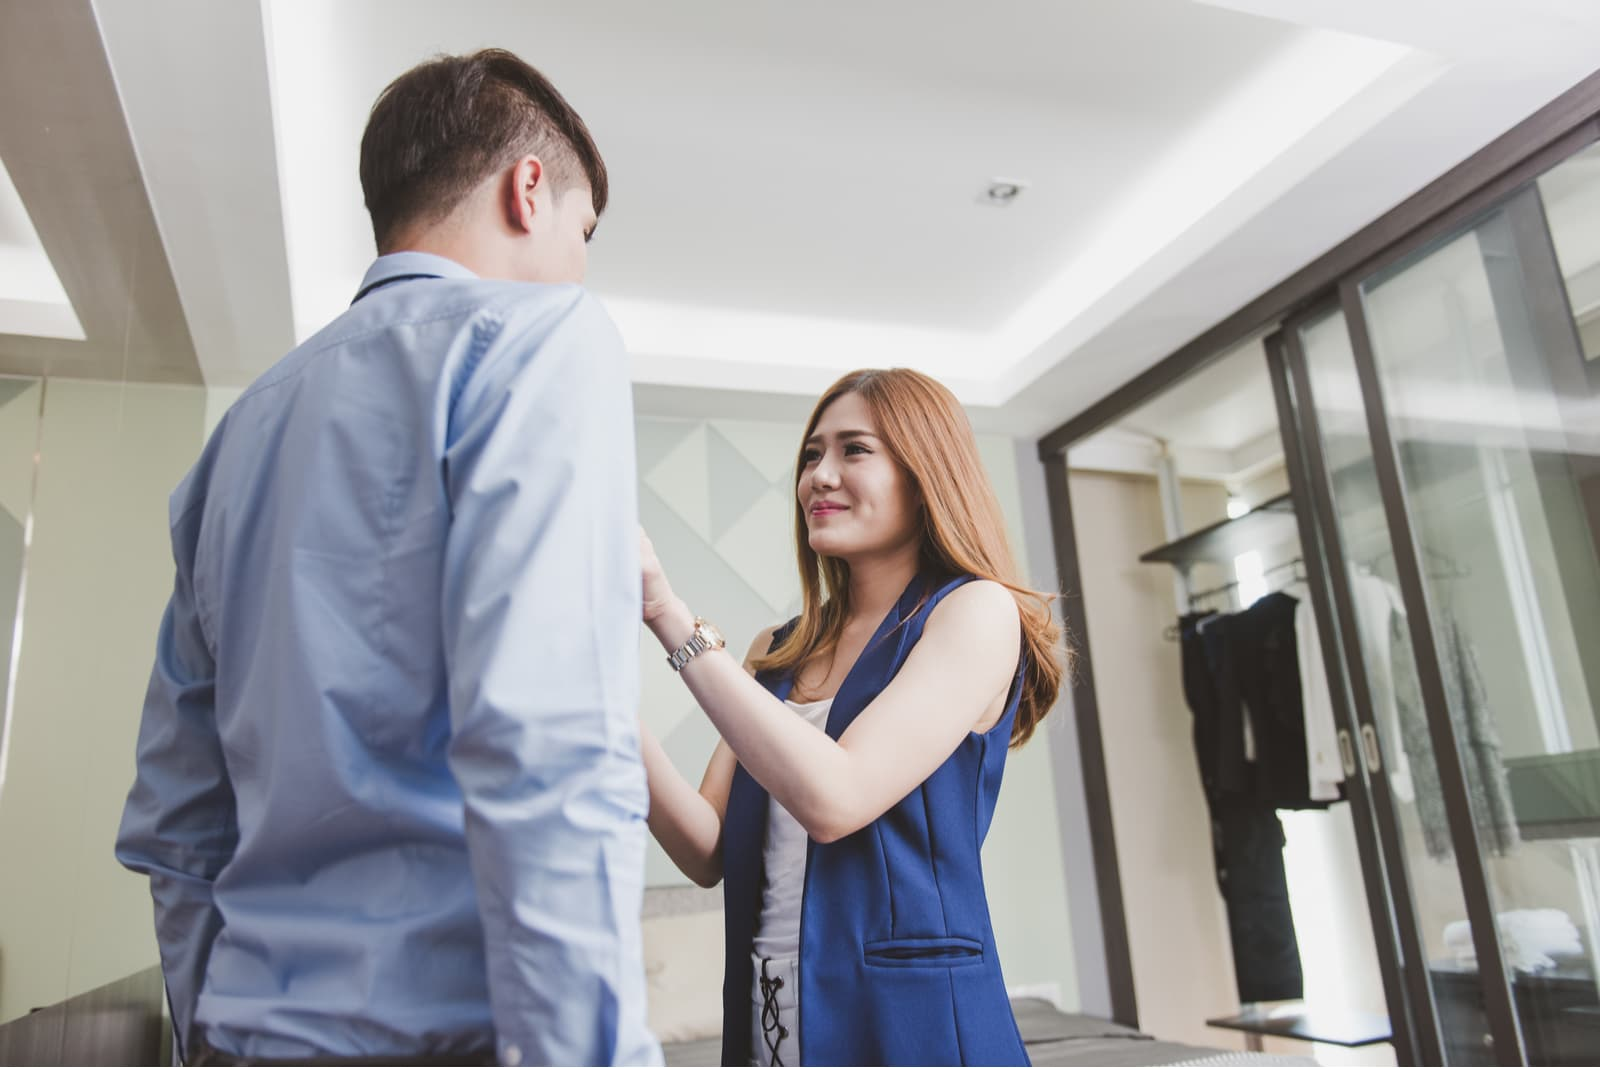 a smiling girl ties a tie to her boyfriend